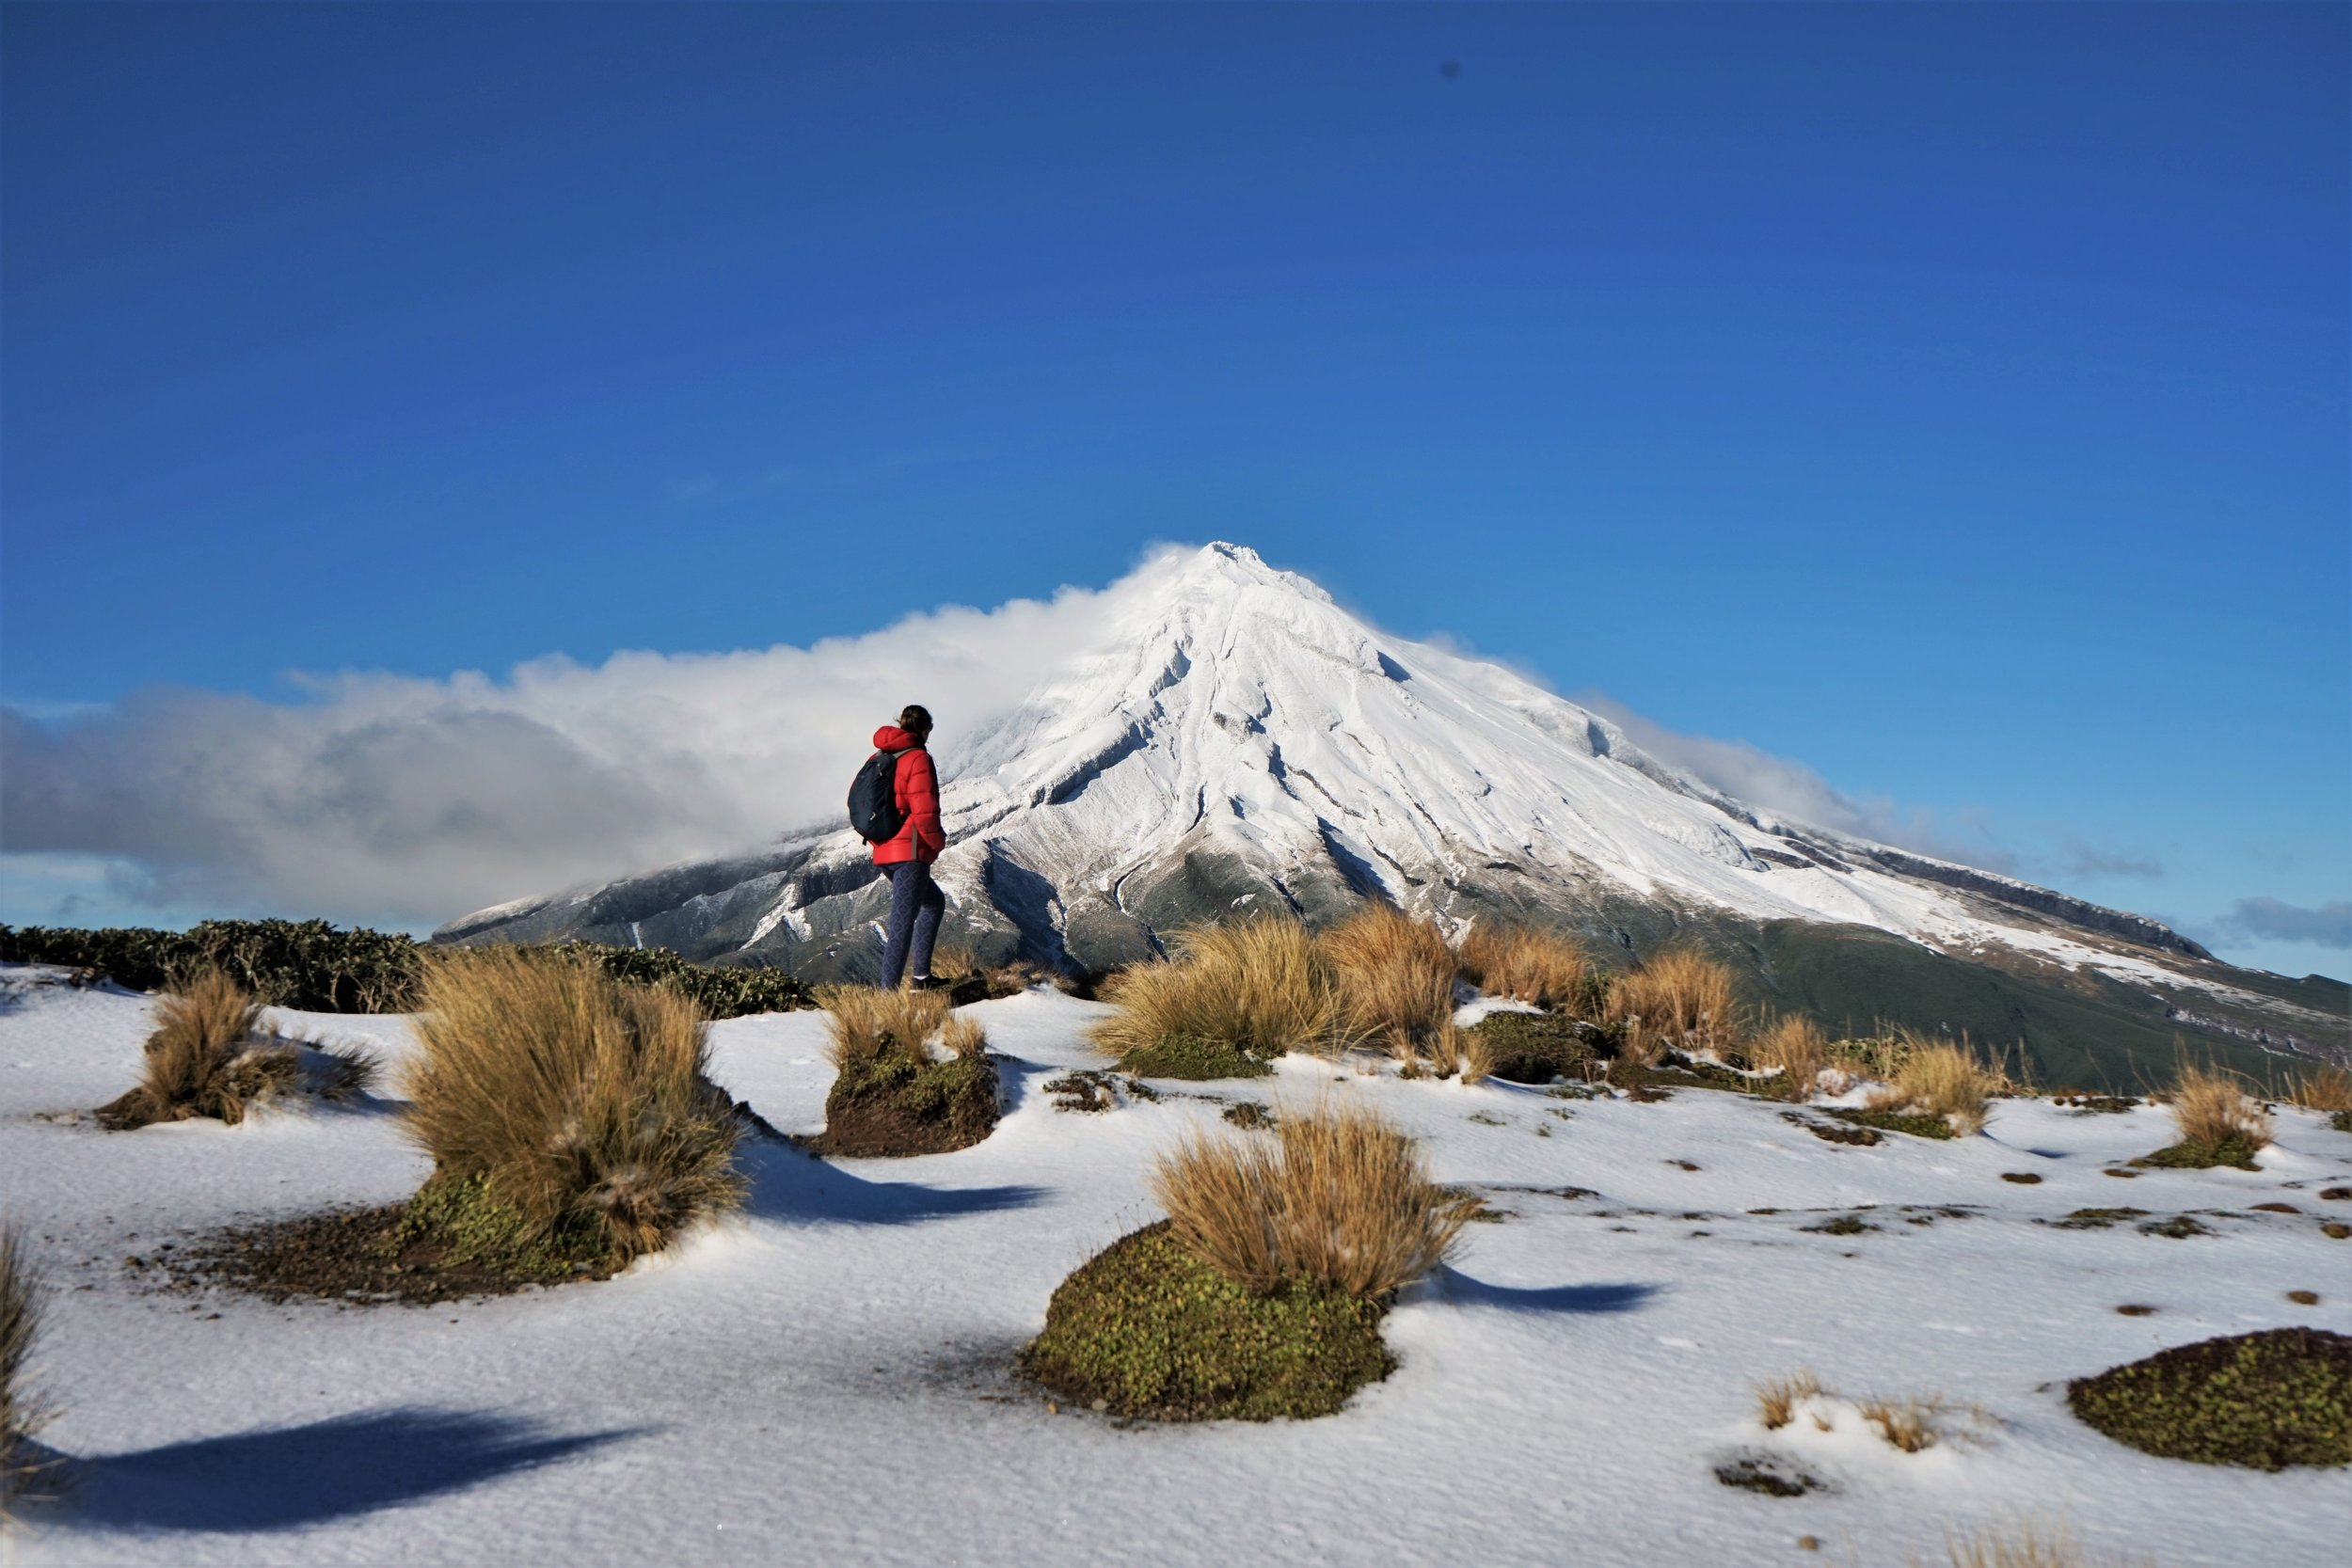 Hiking around the impressive mount Taranaki is one of the best things to do in New Plymouth.